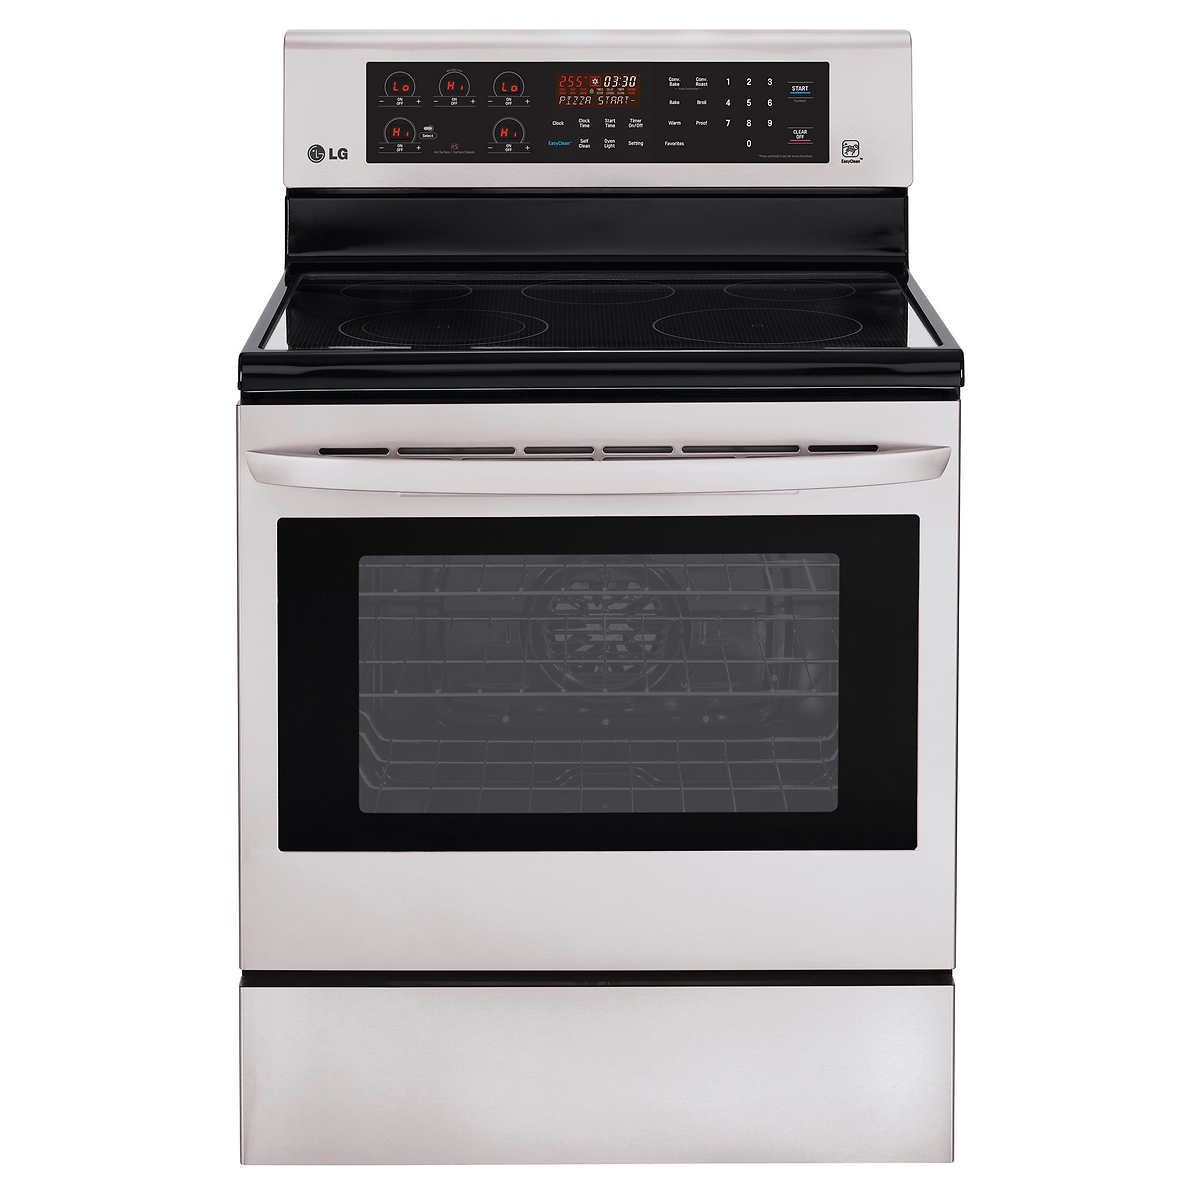 Blue Flame Kitchen Edmonton Appliances Offers